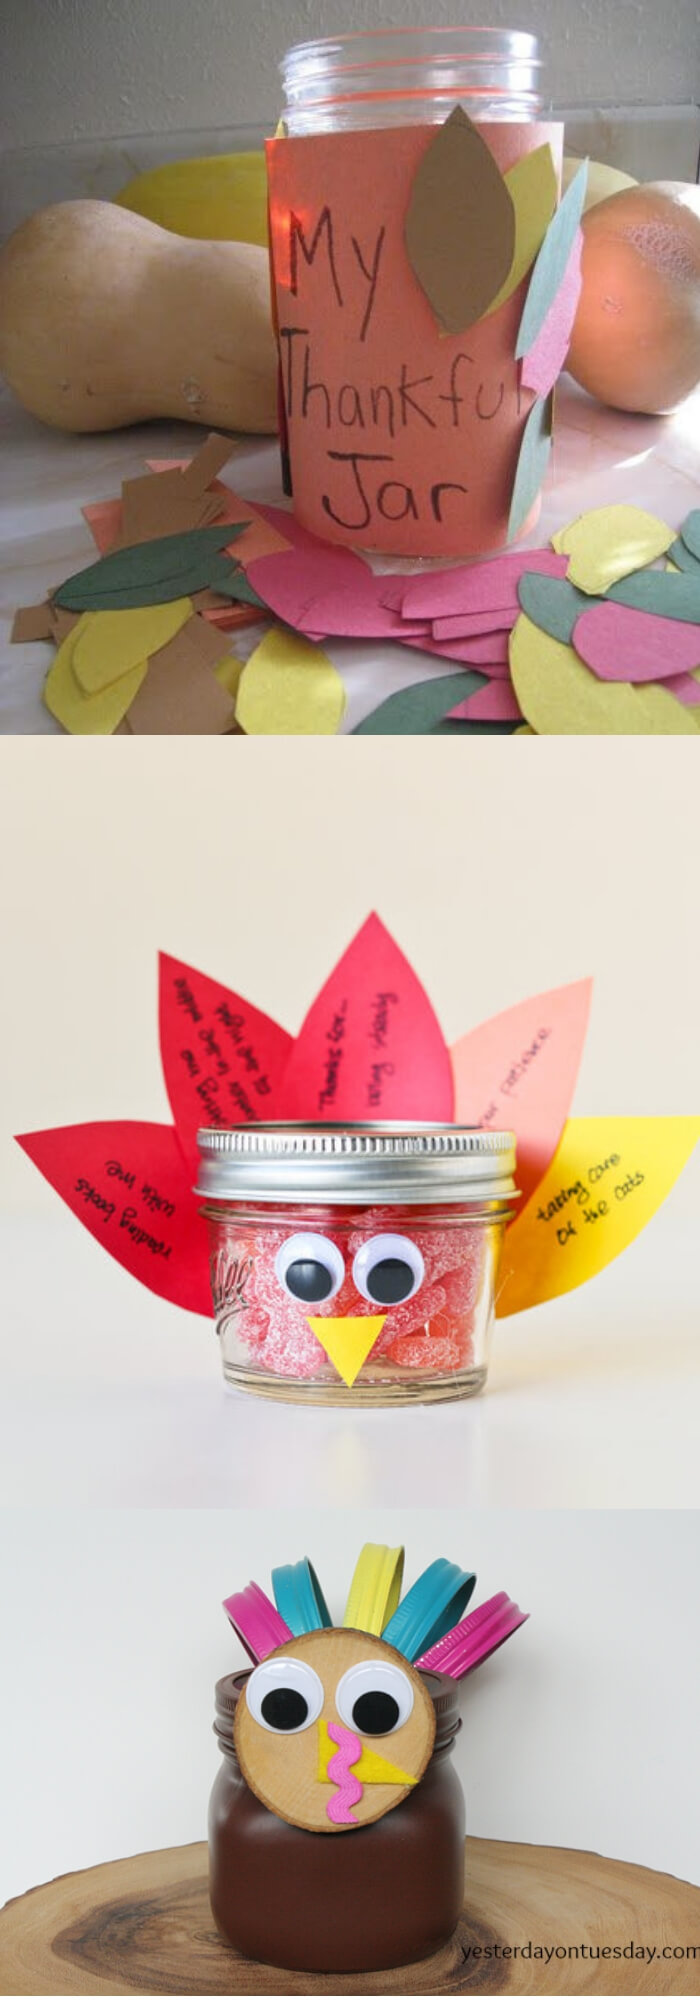 Decorative Jars   Thanksgiving Gifts Kids Can Make - FarmFoodFamily.com